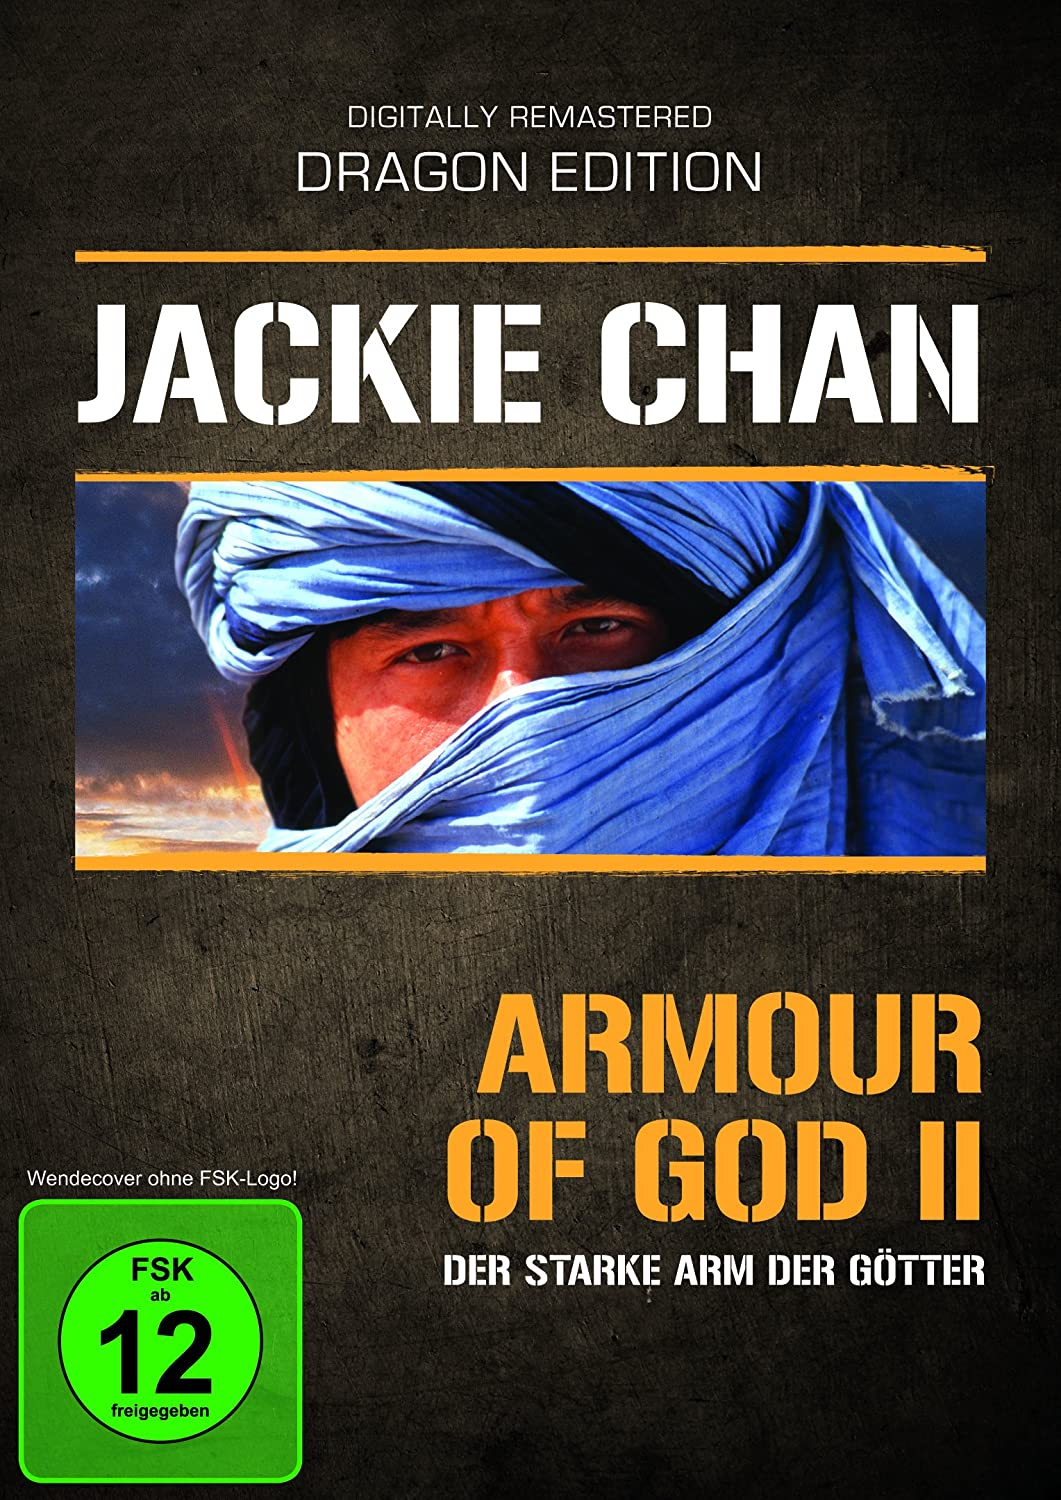 Armour of God II - Der starke Arm der Götter (DVD)